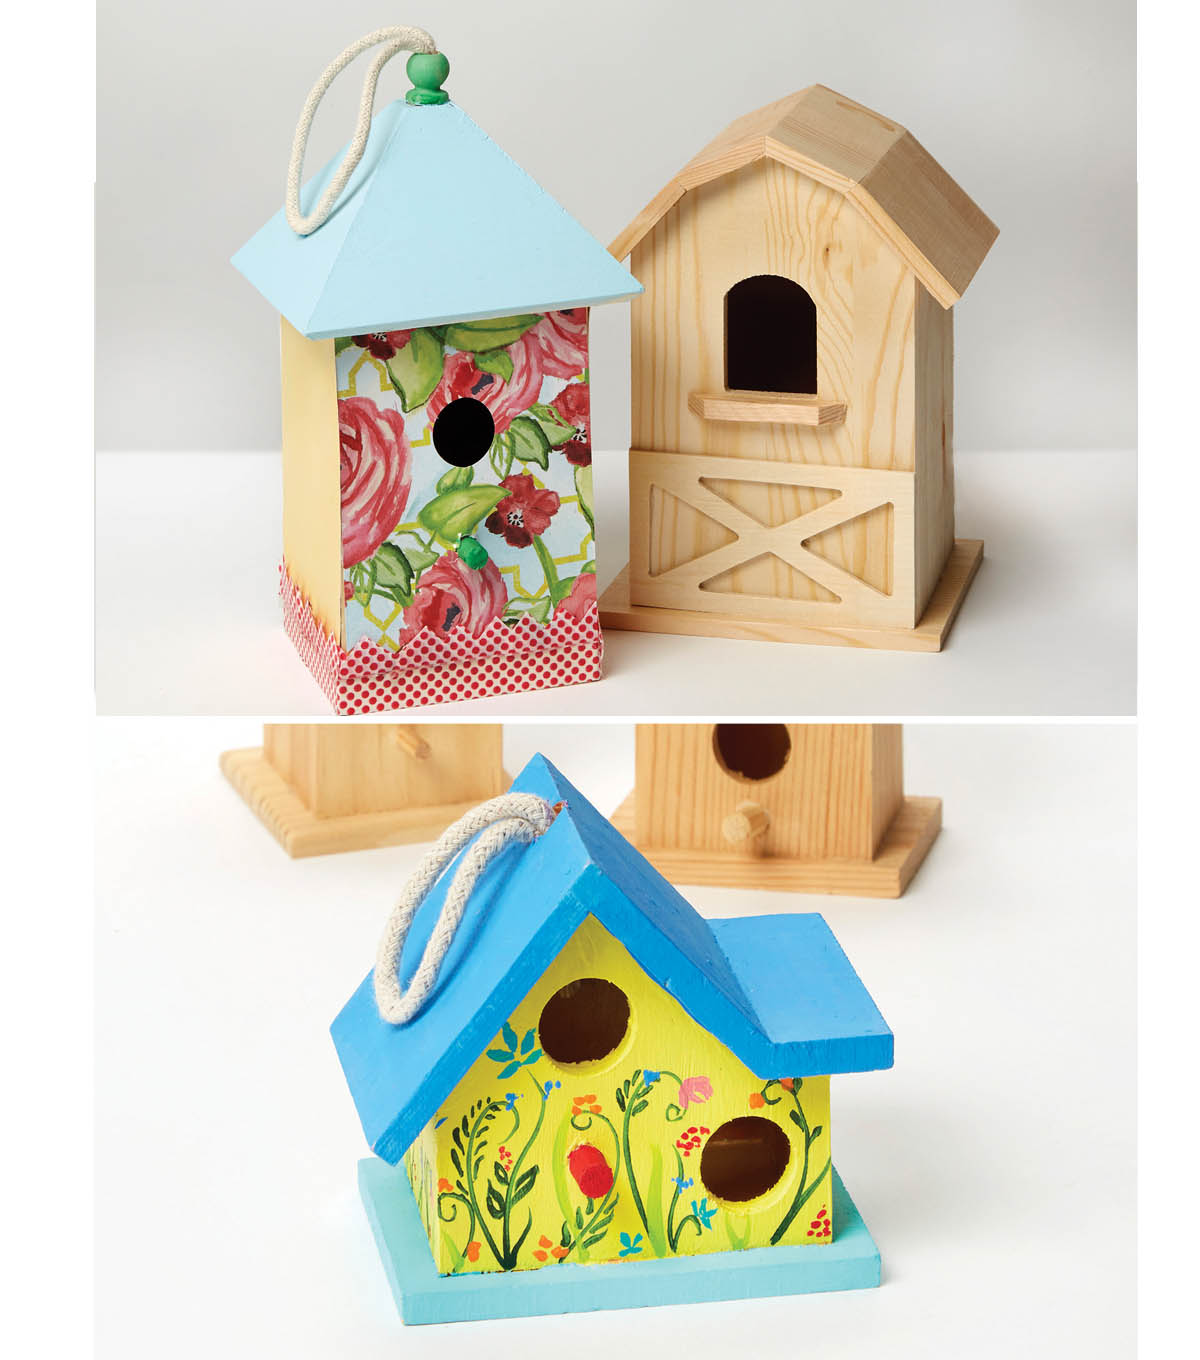 Birdhouse Designs | JOANN on pumpkin fence, reclaimed old wood fence, circular fence, bench fence, elephant fence, mirror fence, tree fence, brush fence, bird fence, bicycle fence, art fence, animal fence, painting fence, bunny fence, planter fence, slave fence, bear fence, cottage fence, squirrel fence, animated picket fence,